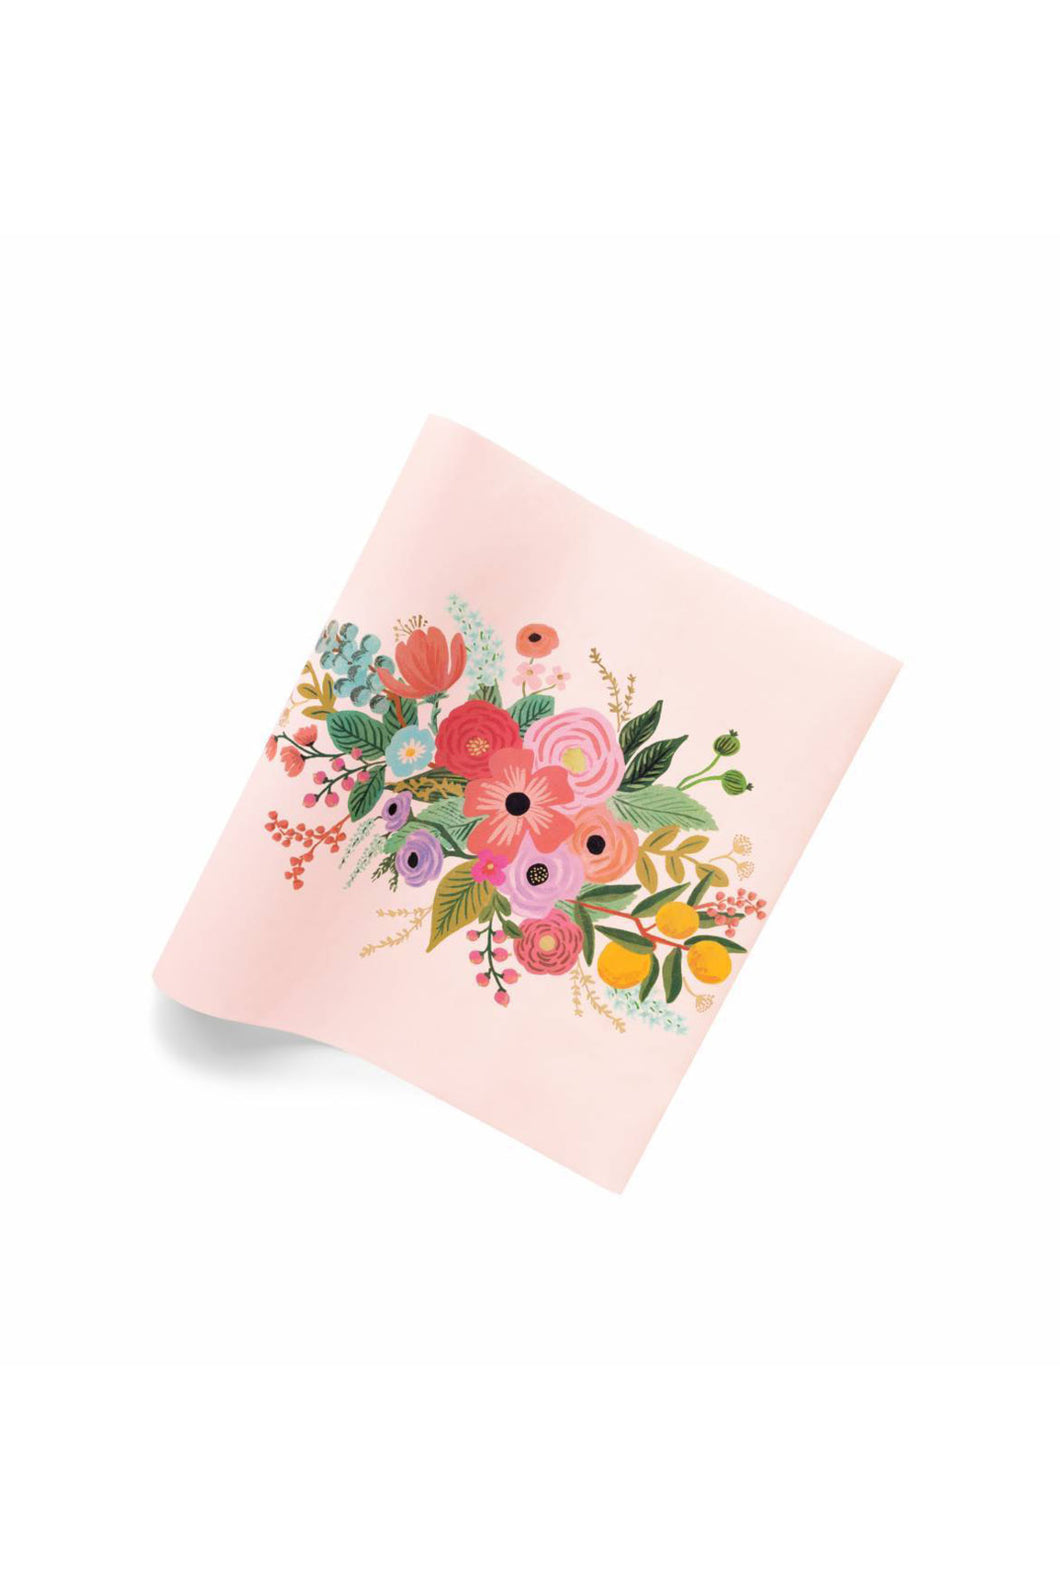 Rifle Paper Co - Paper Table Runner - 3m - Garden Party